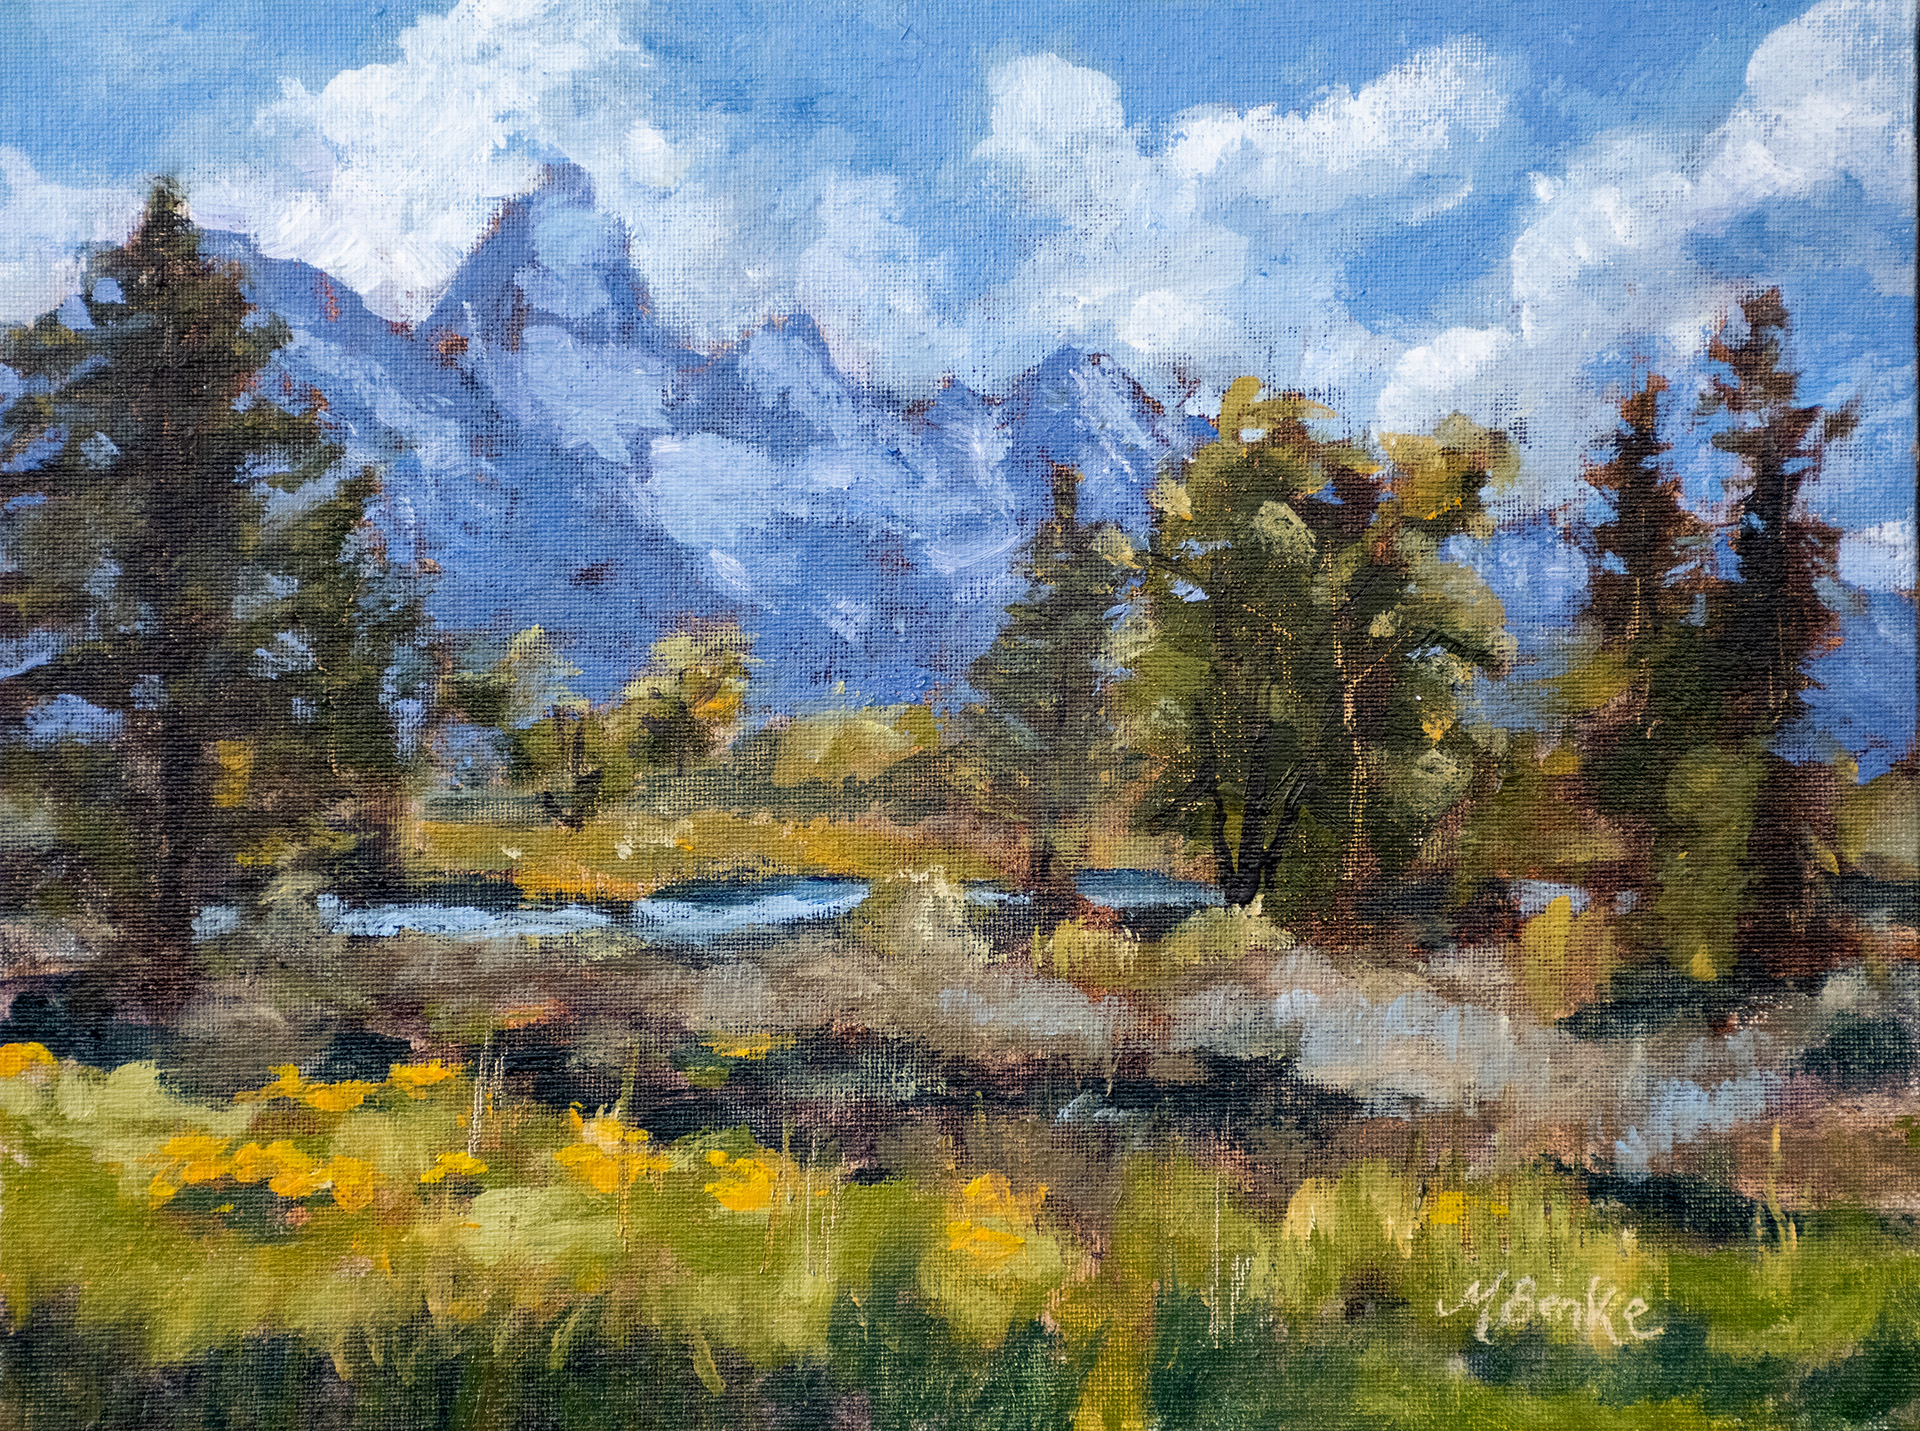 This stunning view captured in impressionistic oils greeted us every morning on a recent trip to Grand Teton National Park by Mary Benke